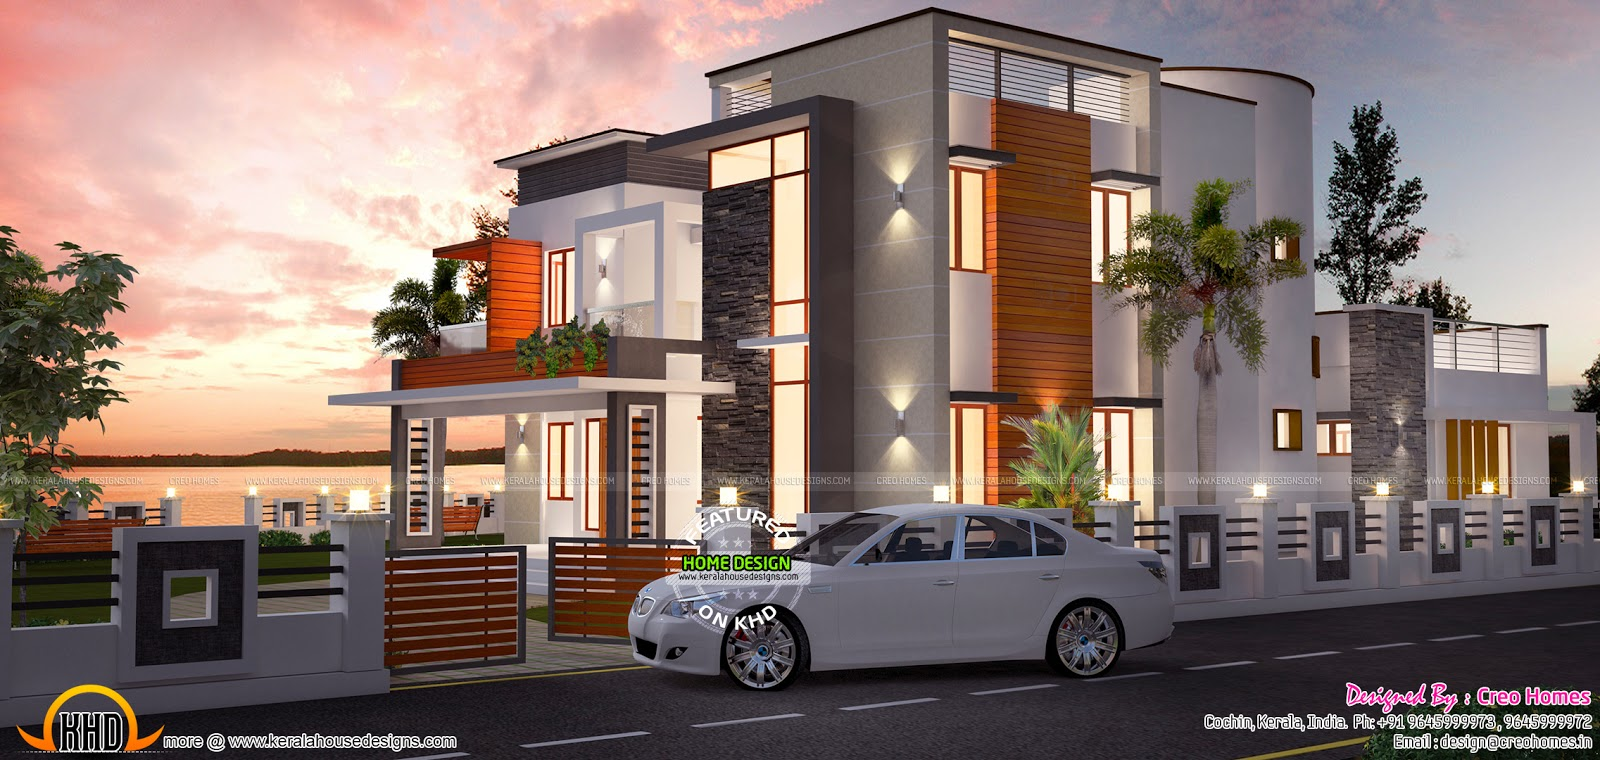 waterfront house design kerala home design floor plans narrow waterfront home floor plans narrow waterfront house